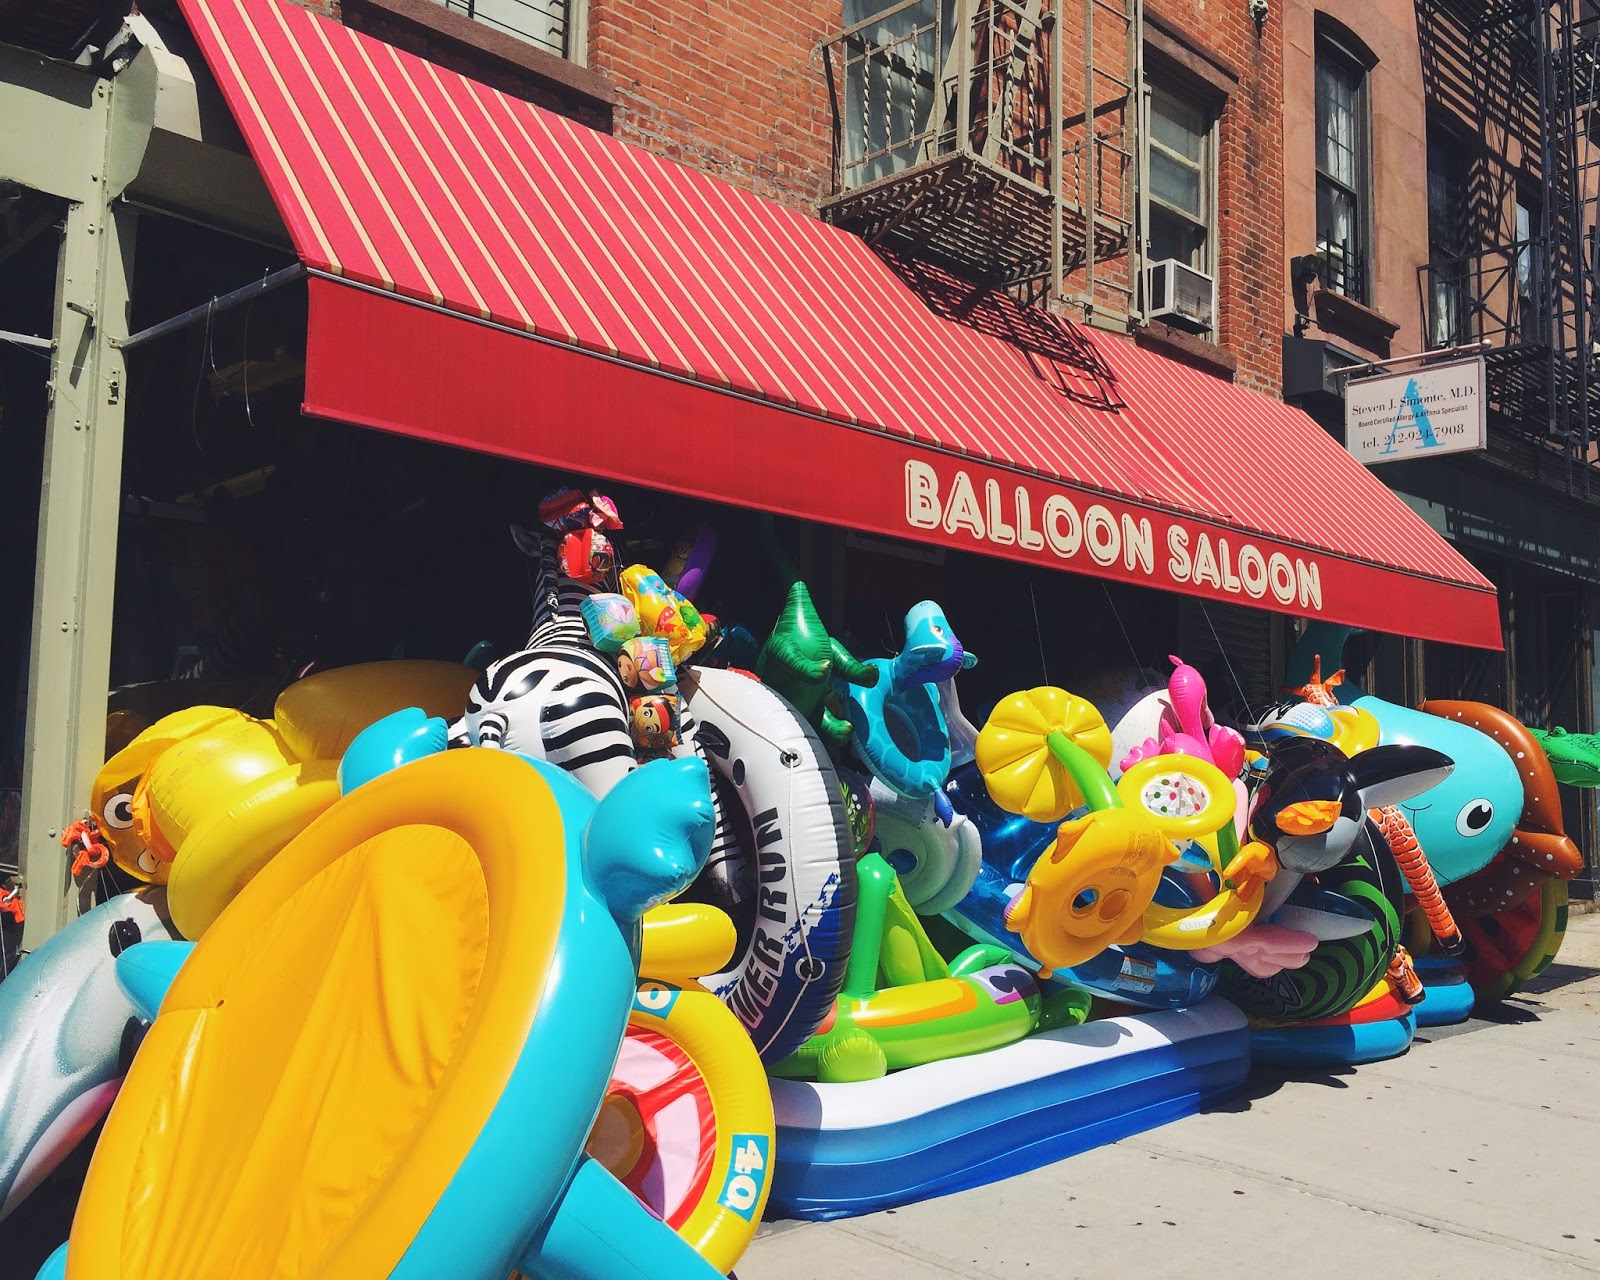 Balloon Saloon, Inflatable floaty